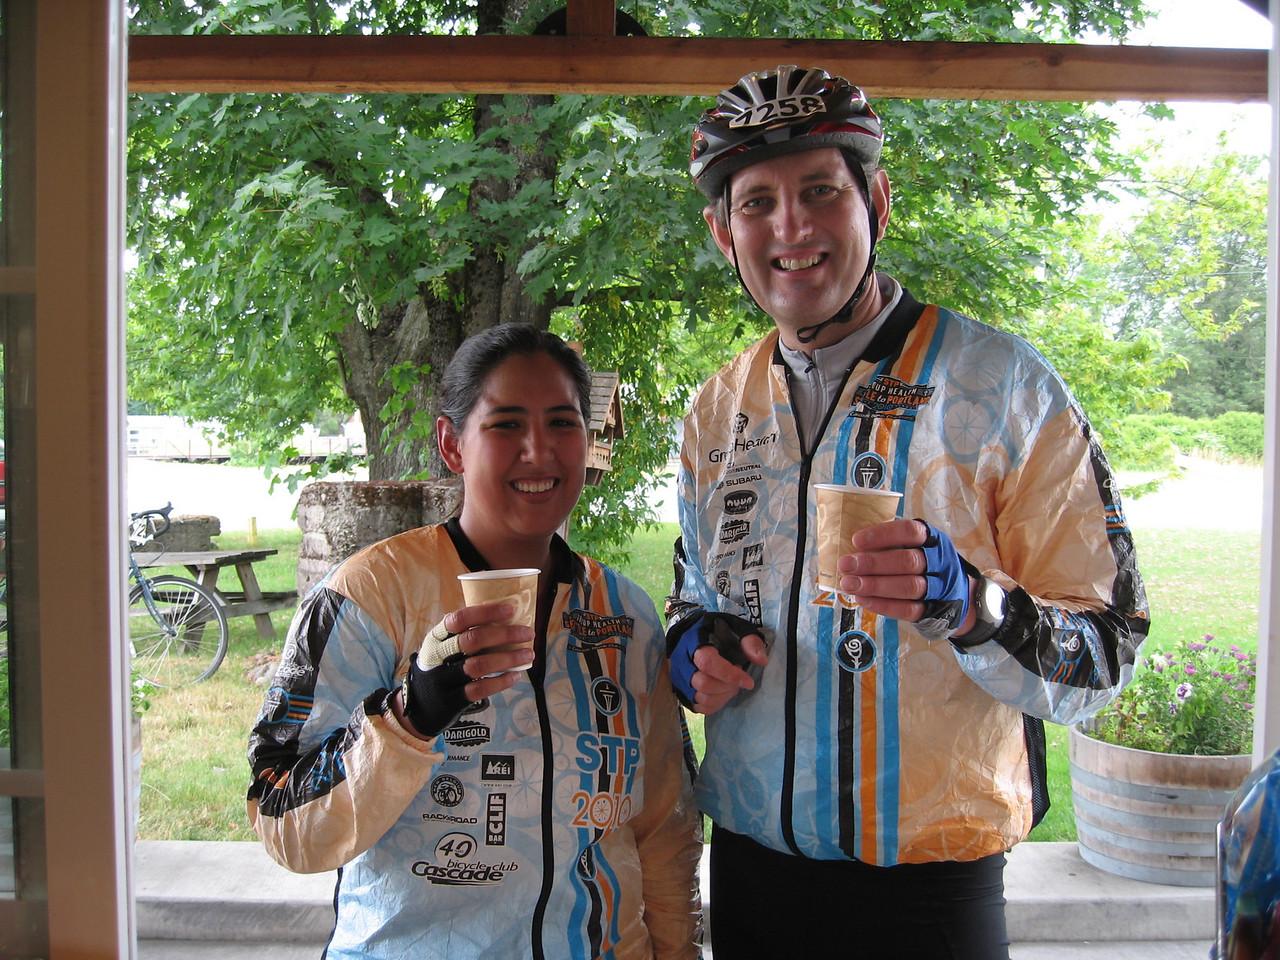 Nancy and Eugene at an emergence Espresso stop in Roy - day one of the ride. We are about 30 miles from completing the first day's ride.